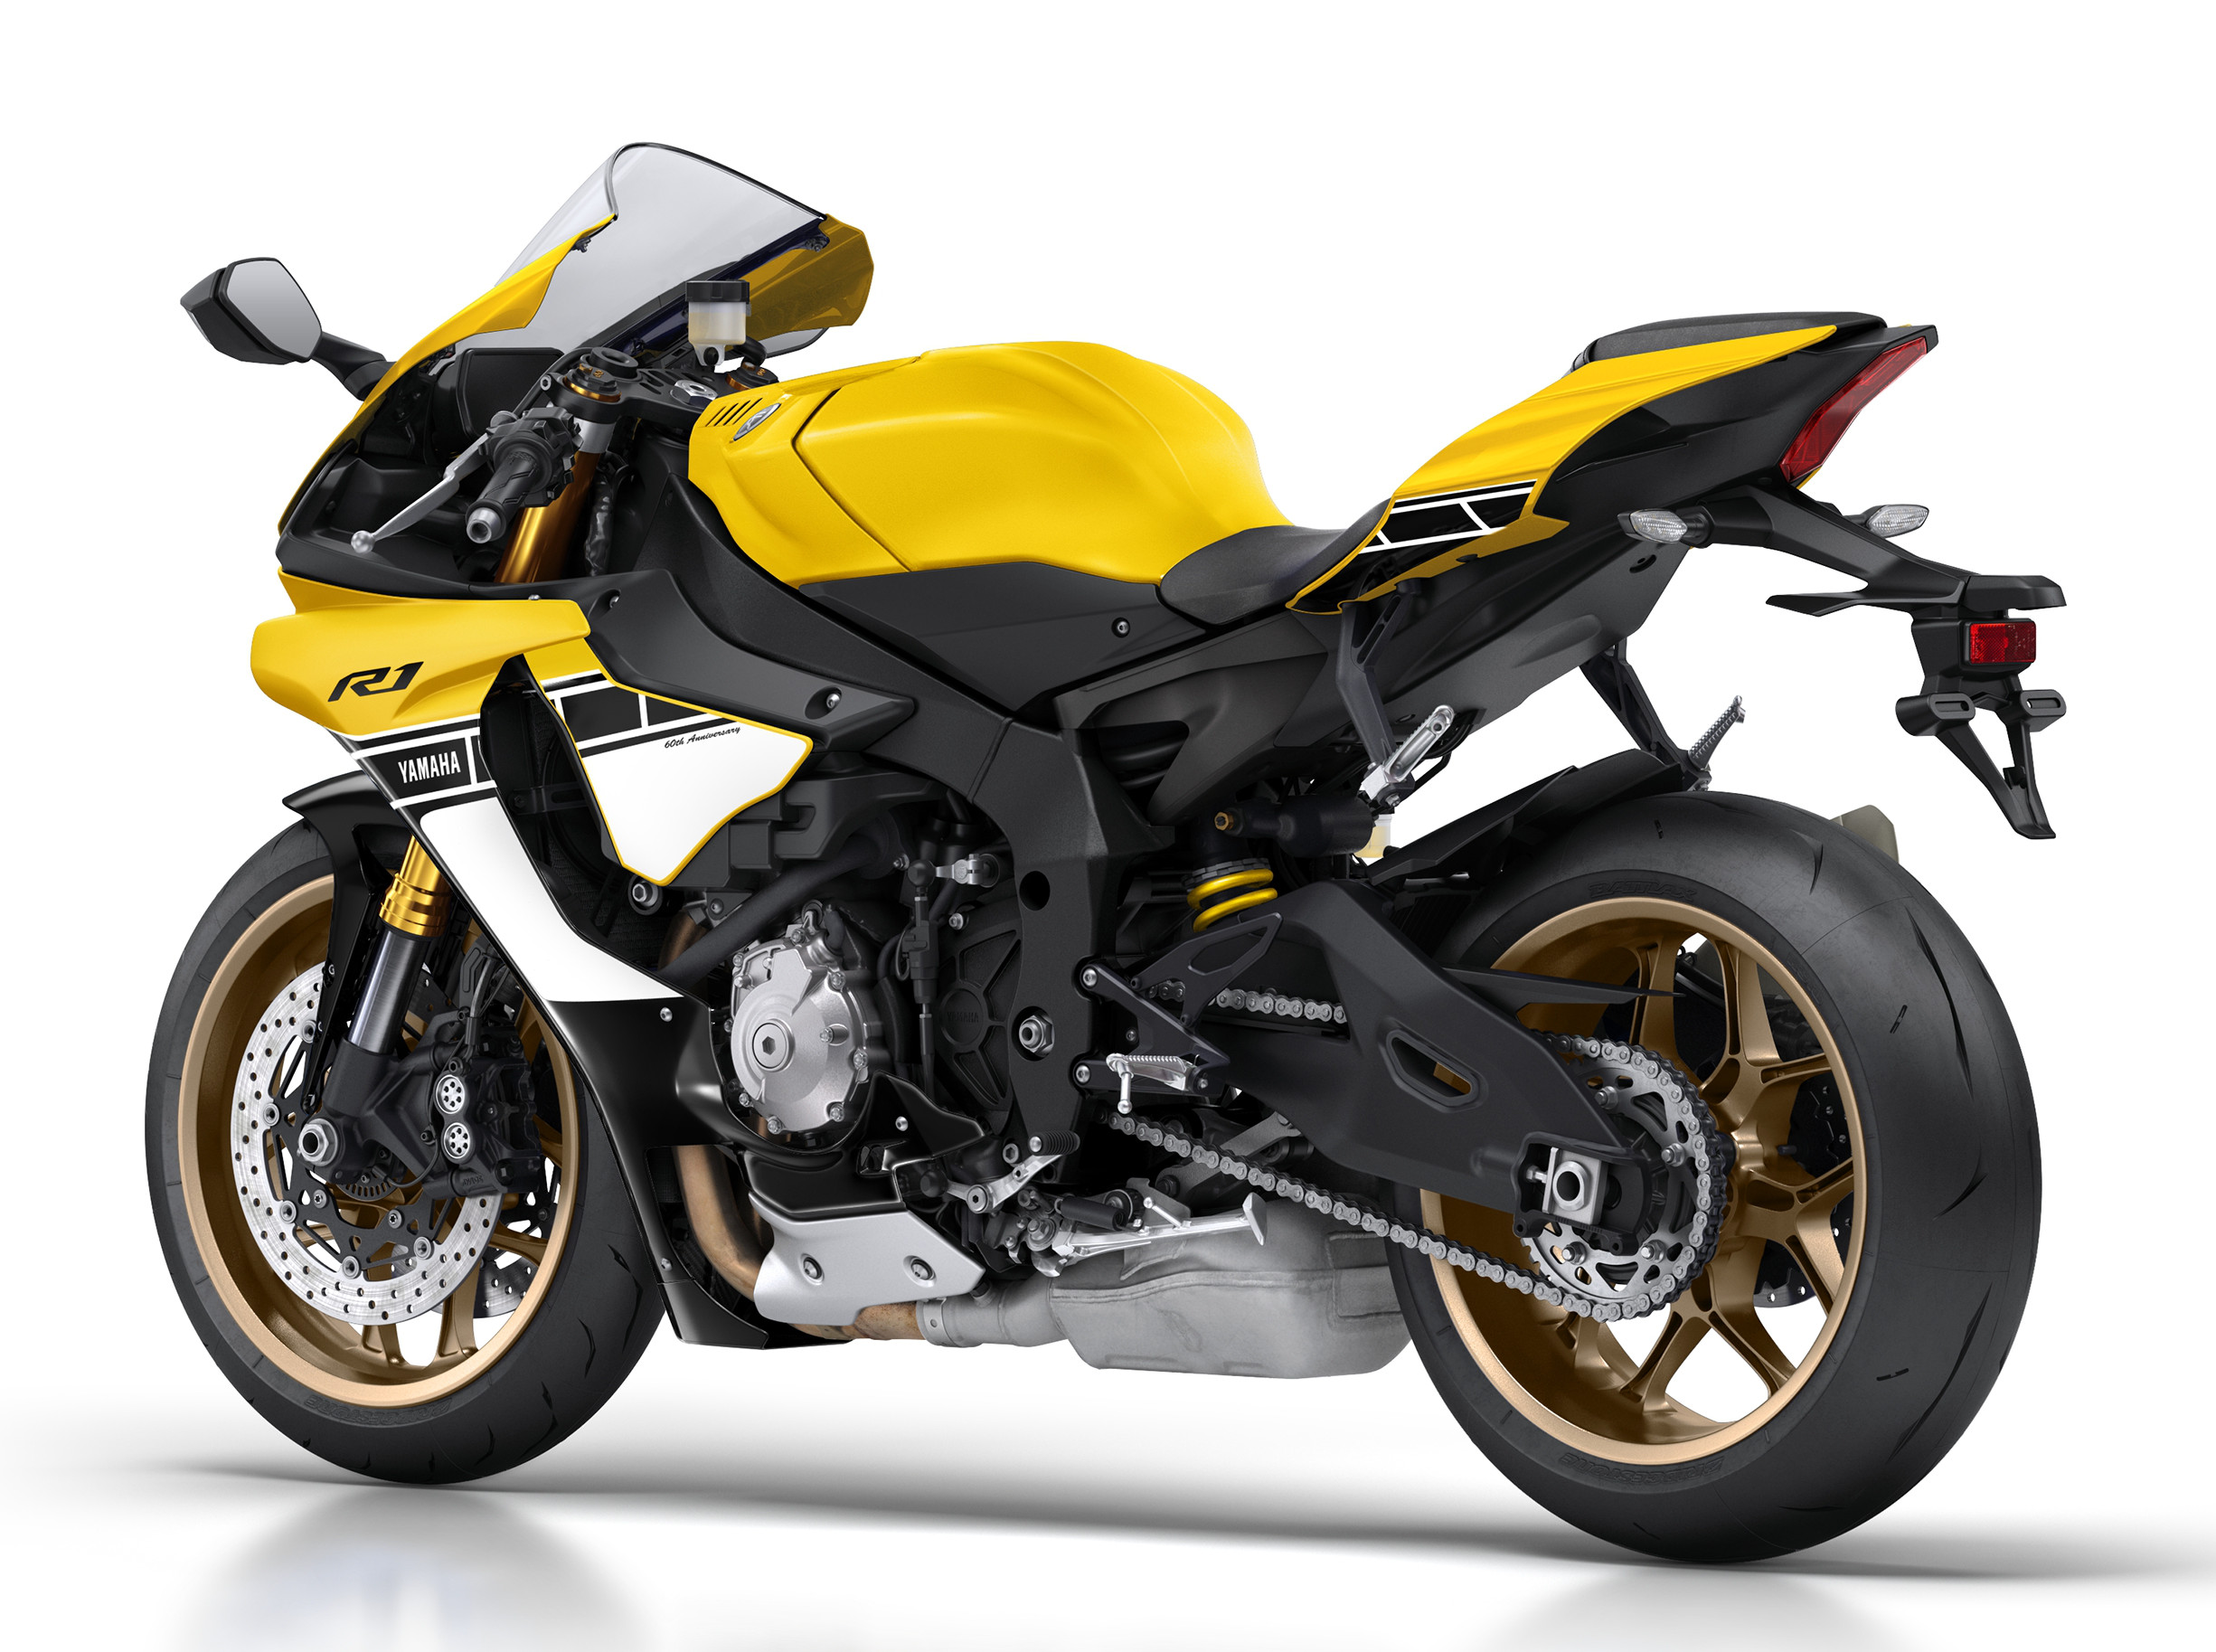 2020 Yamaha YZF-R1 - Vernon Motorcycles & ATVs for sale